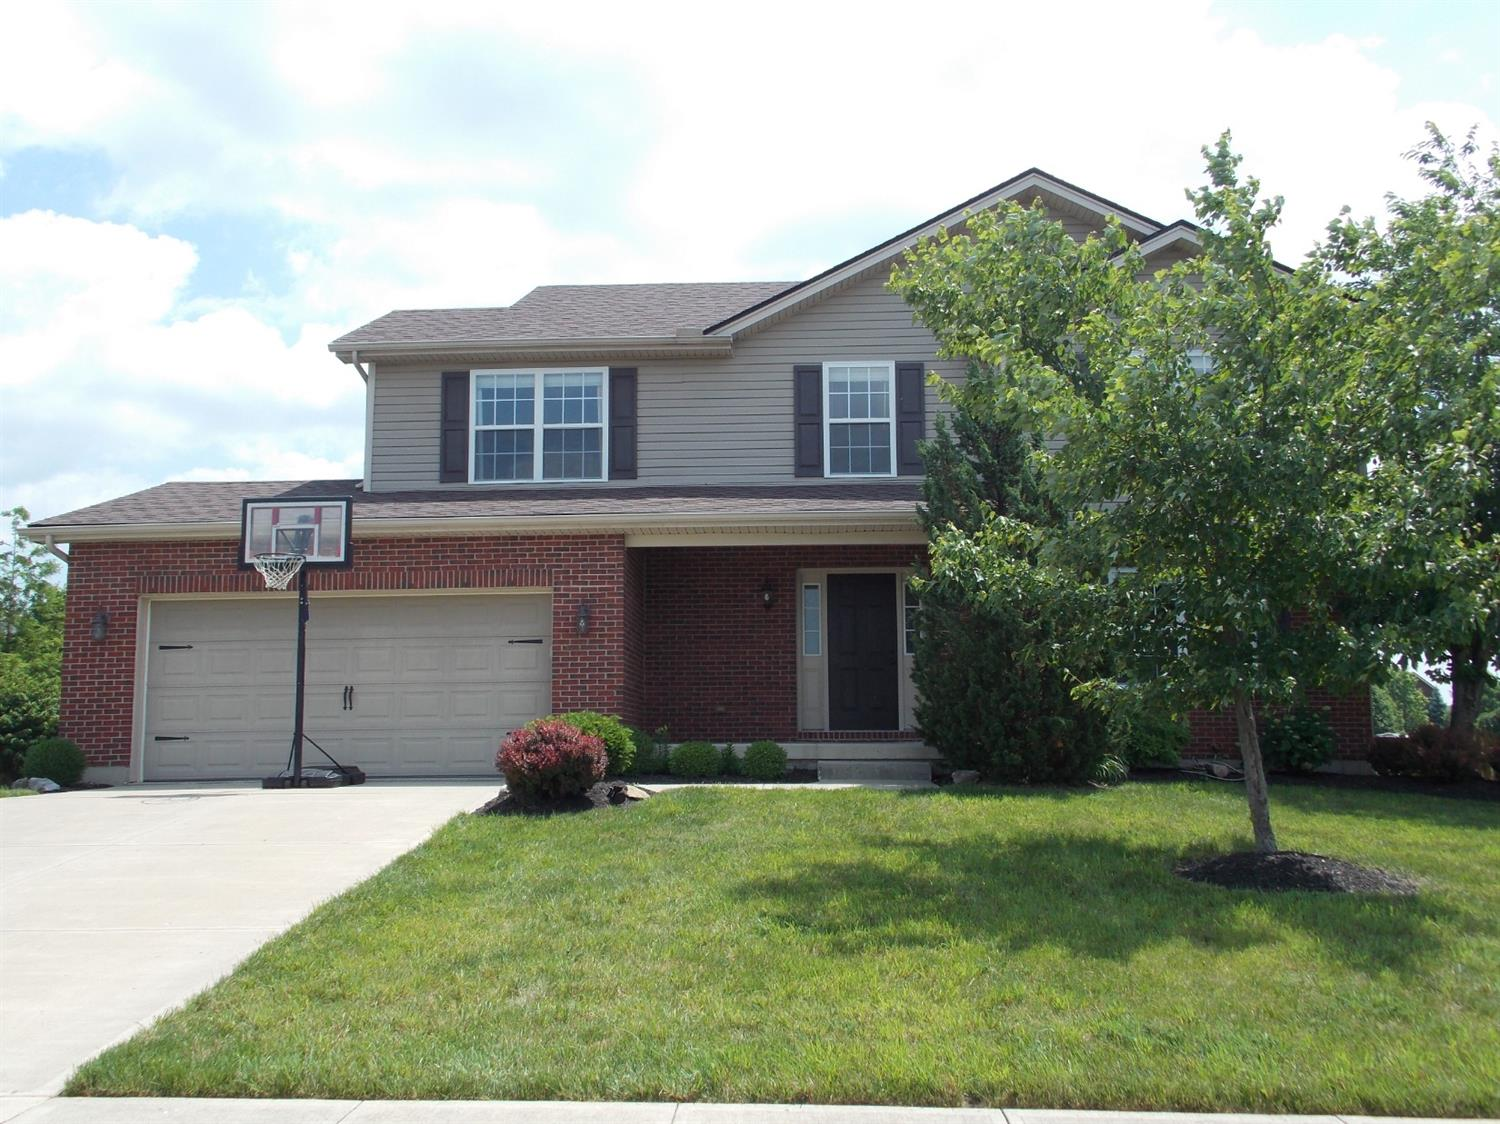 Property for sale at 7790 Rock Port Way, West Chester,  Ohio 45069